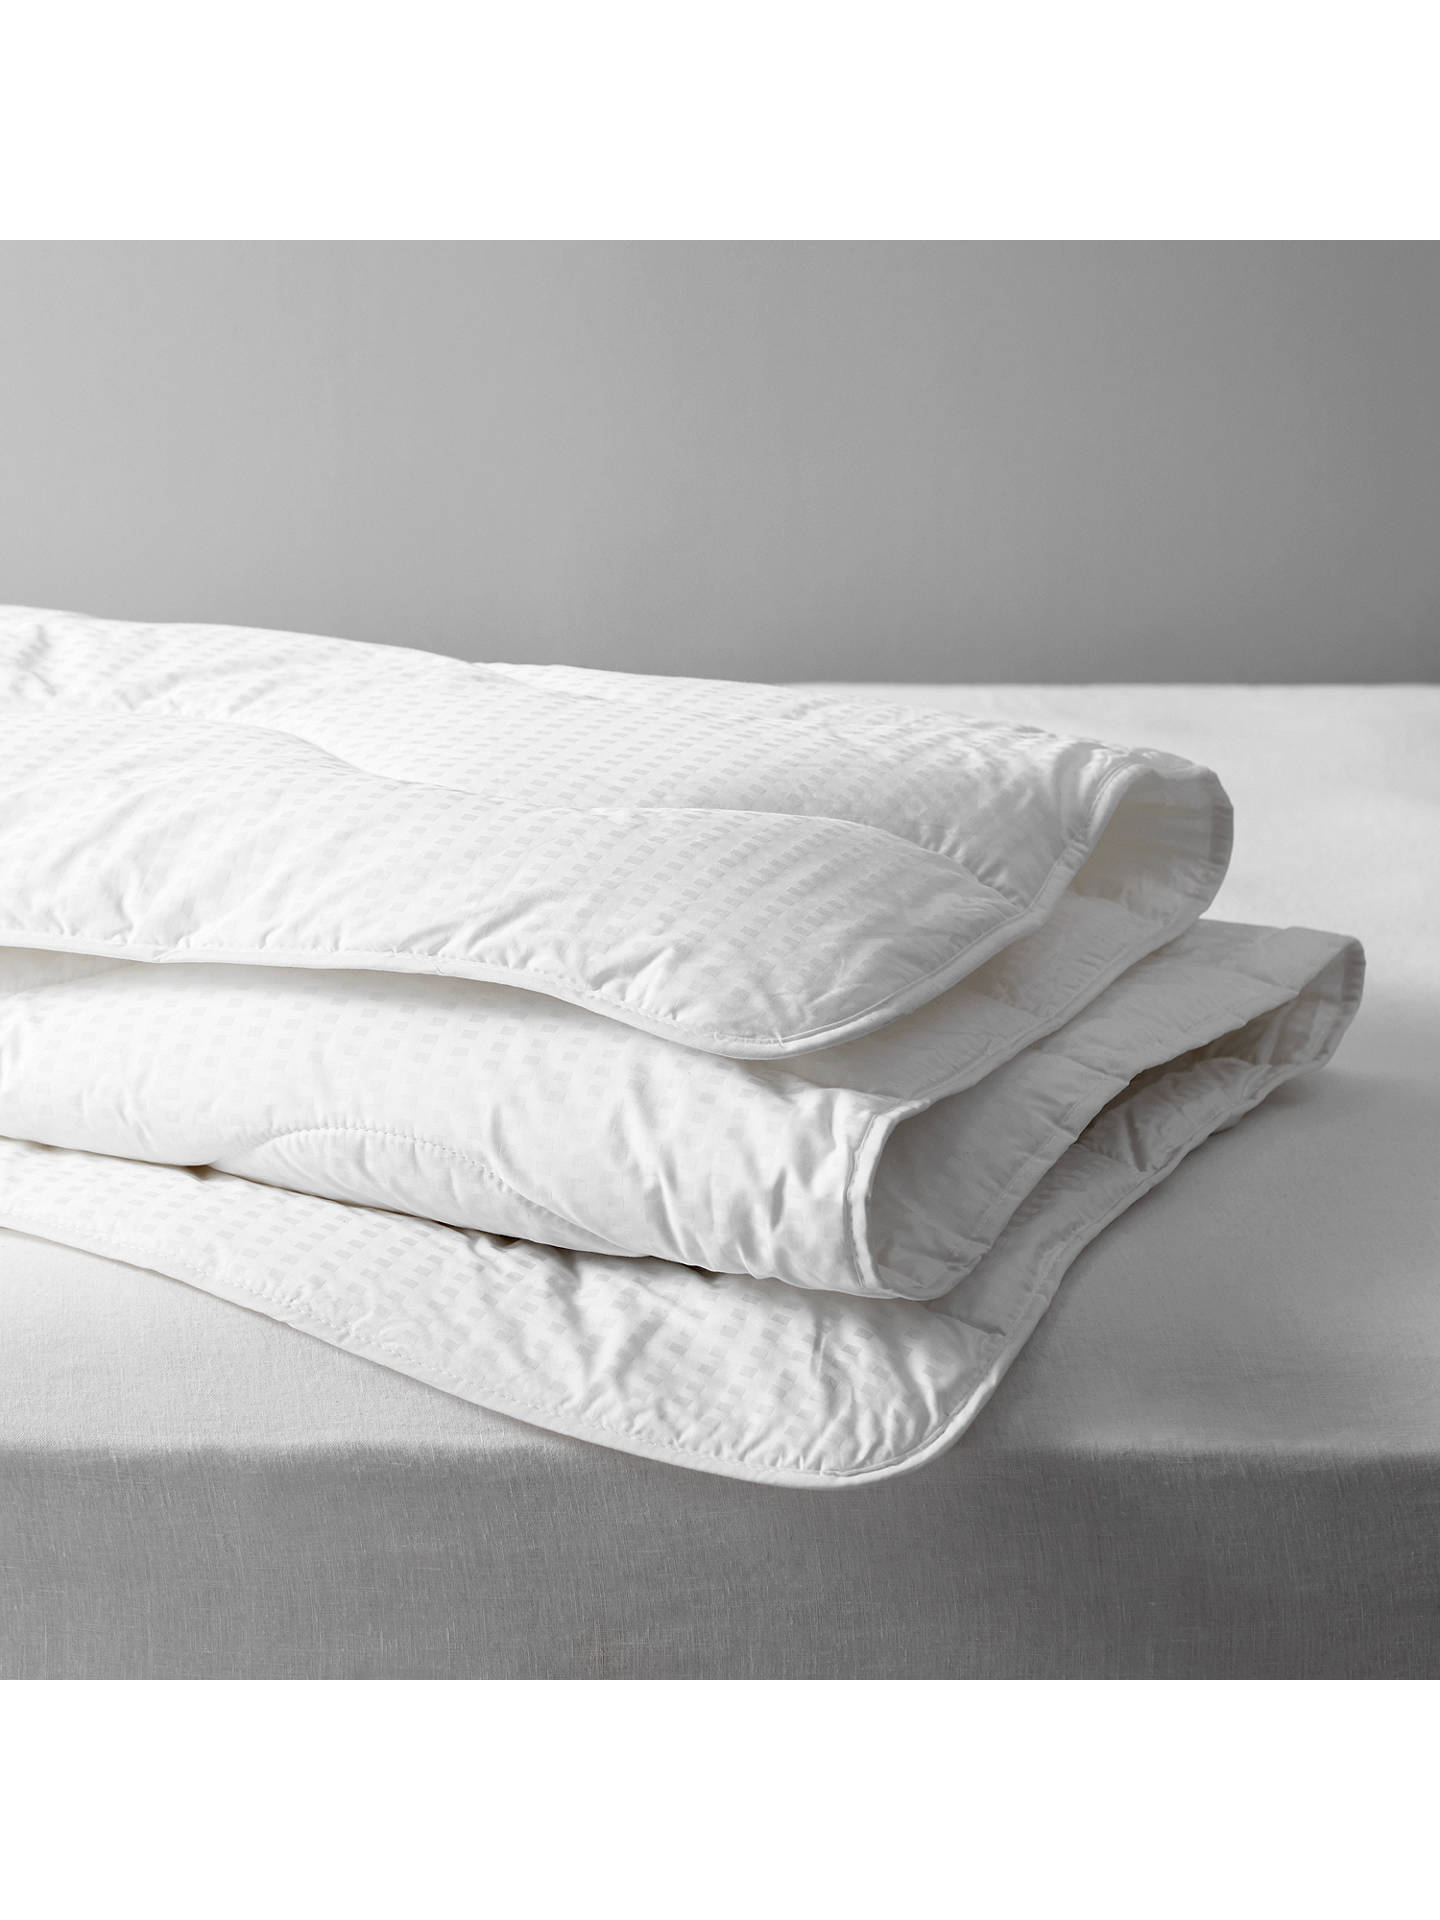 BuyJohn Lewis & Partners Synthetic Collection Breathable Microfibre Duvet, 4.5 Tog, Single Online at johnlewis.com